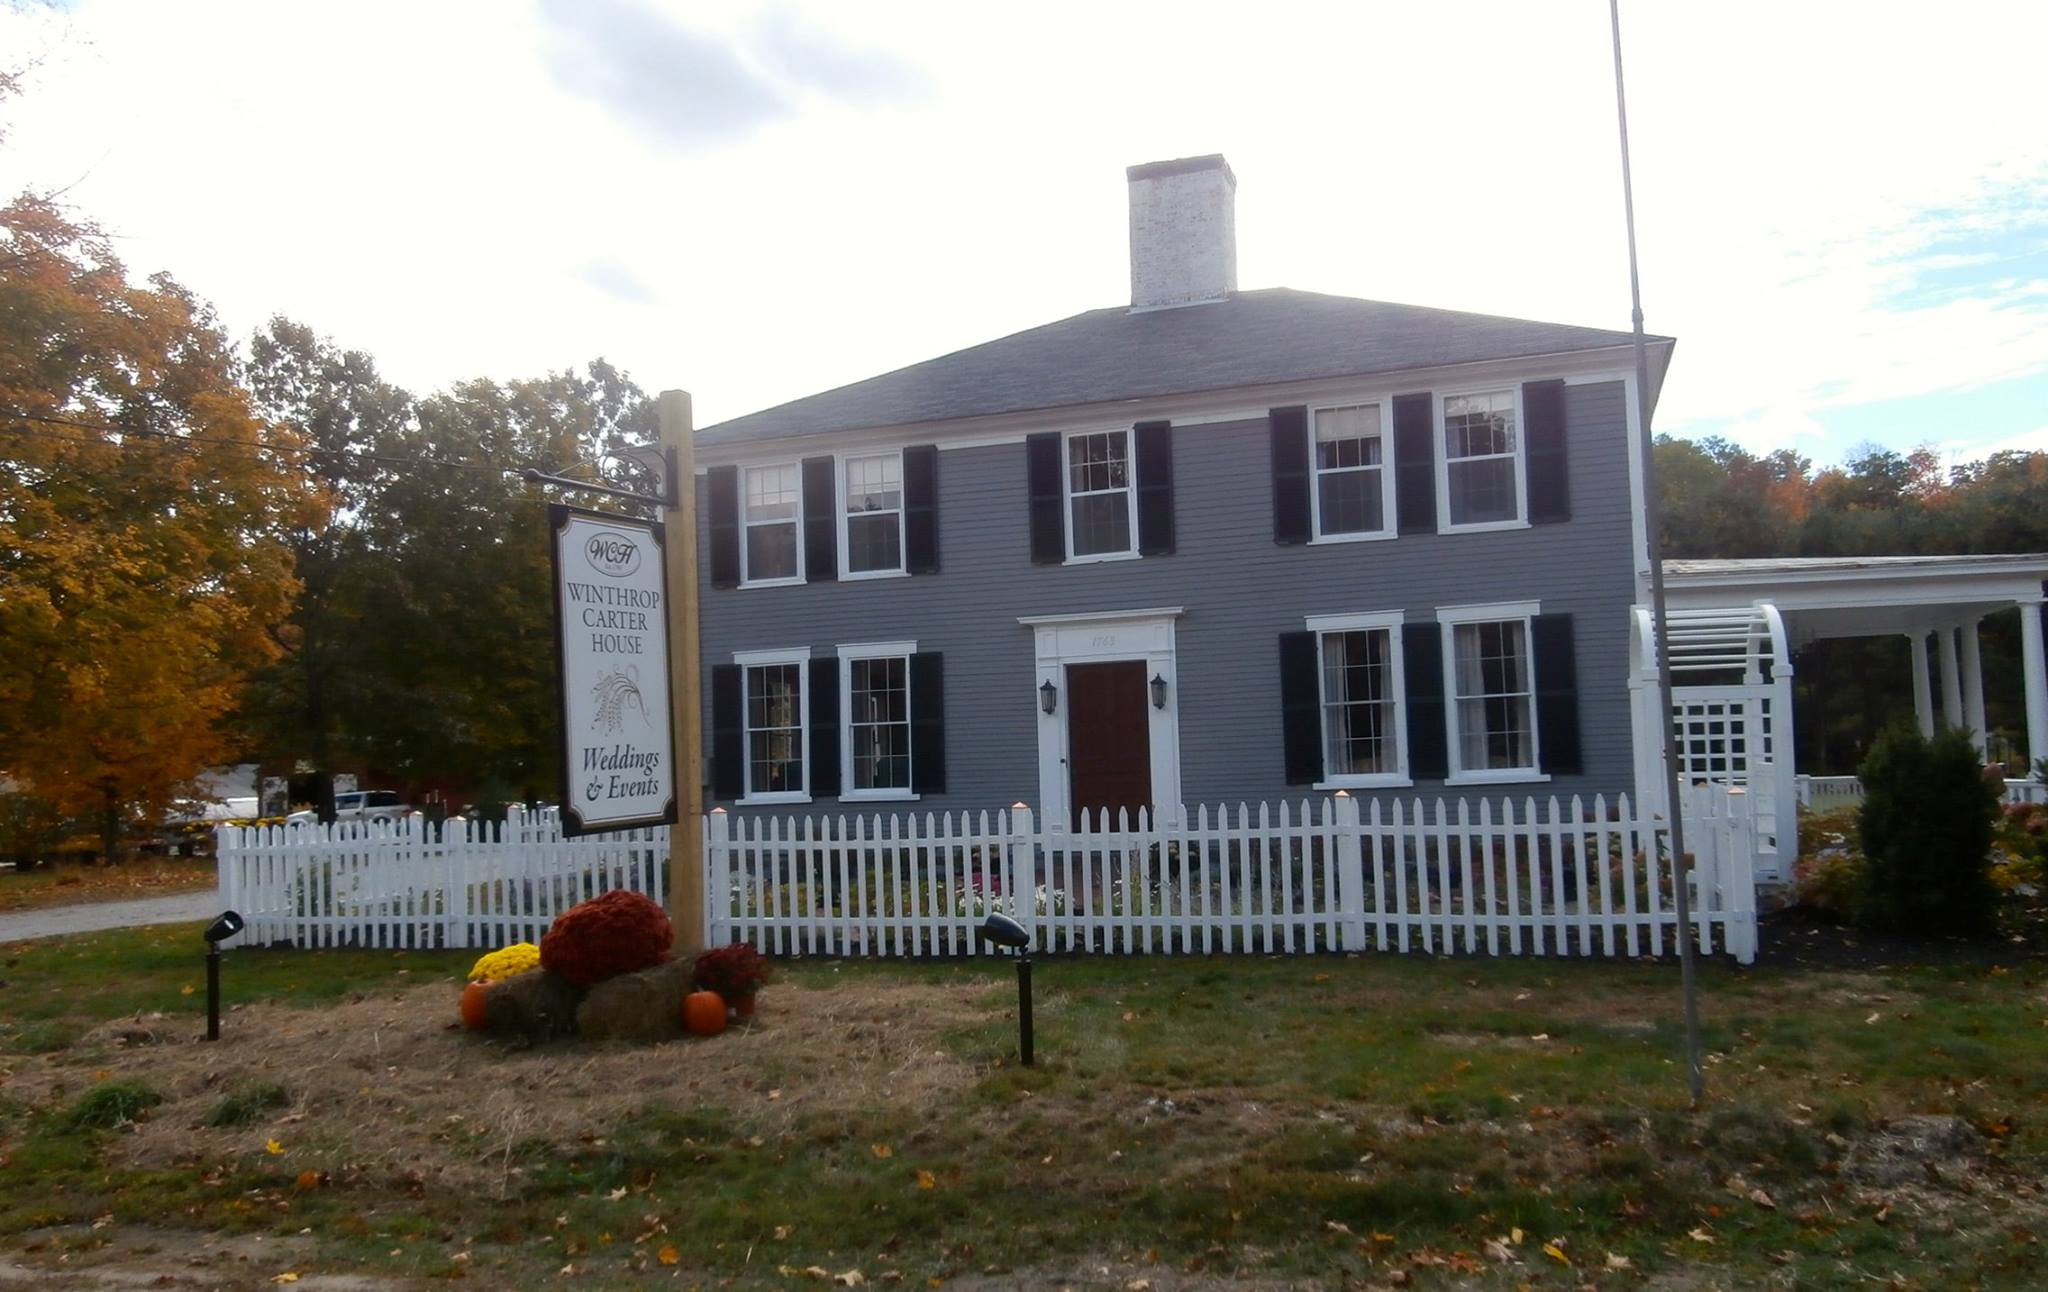 Photograph Of The Winthrop Carter House Opened In September 2015 Formerly Kettle